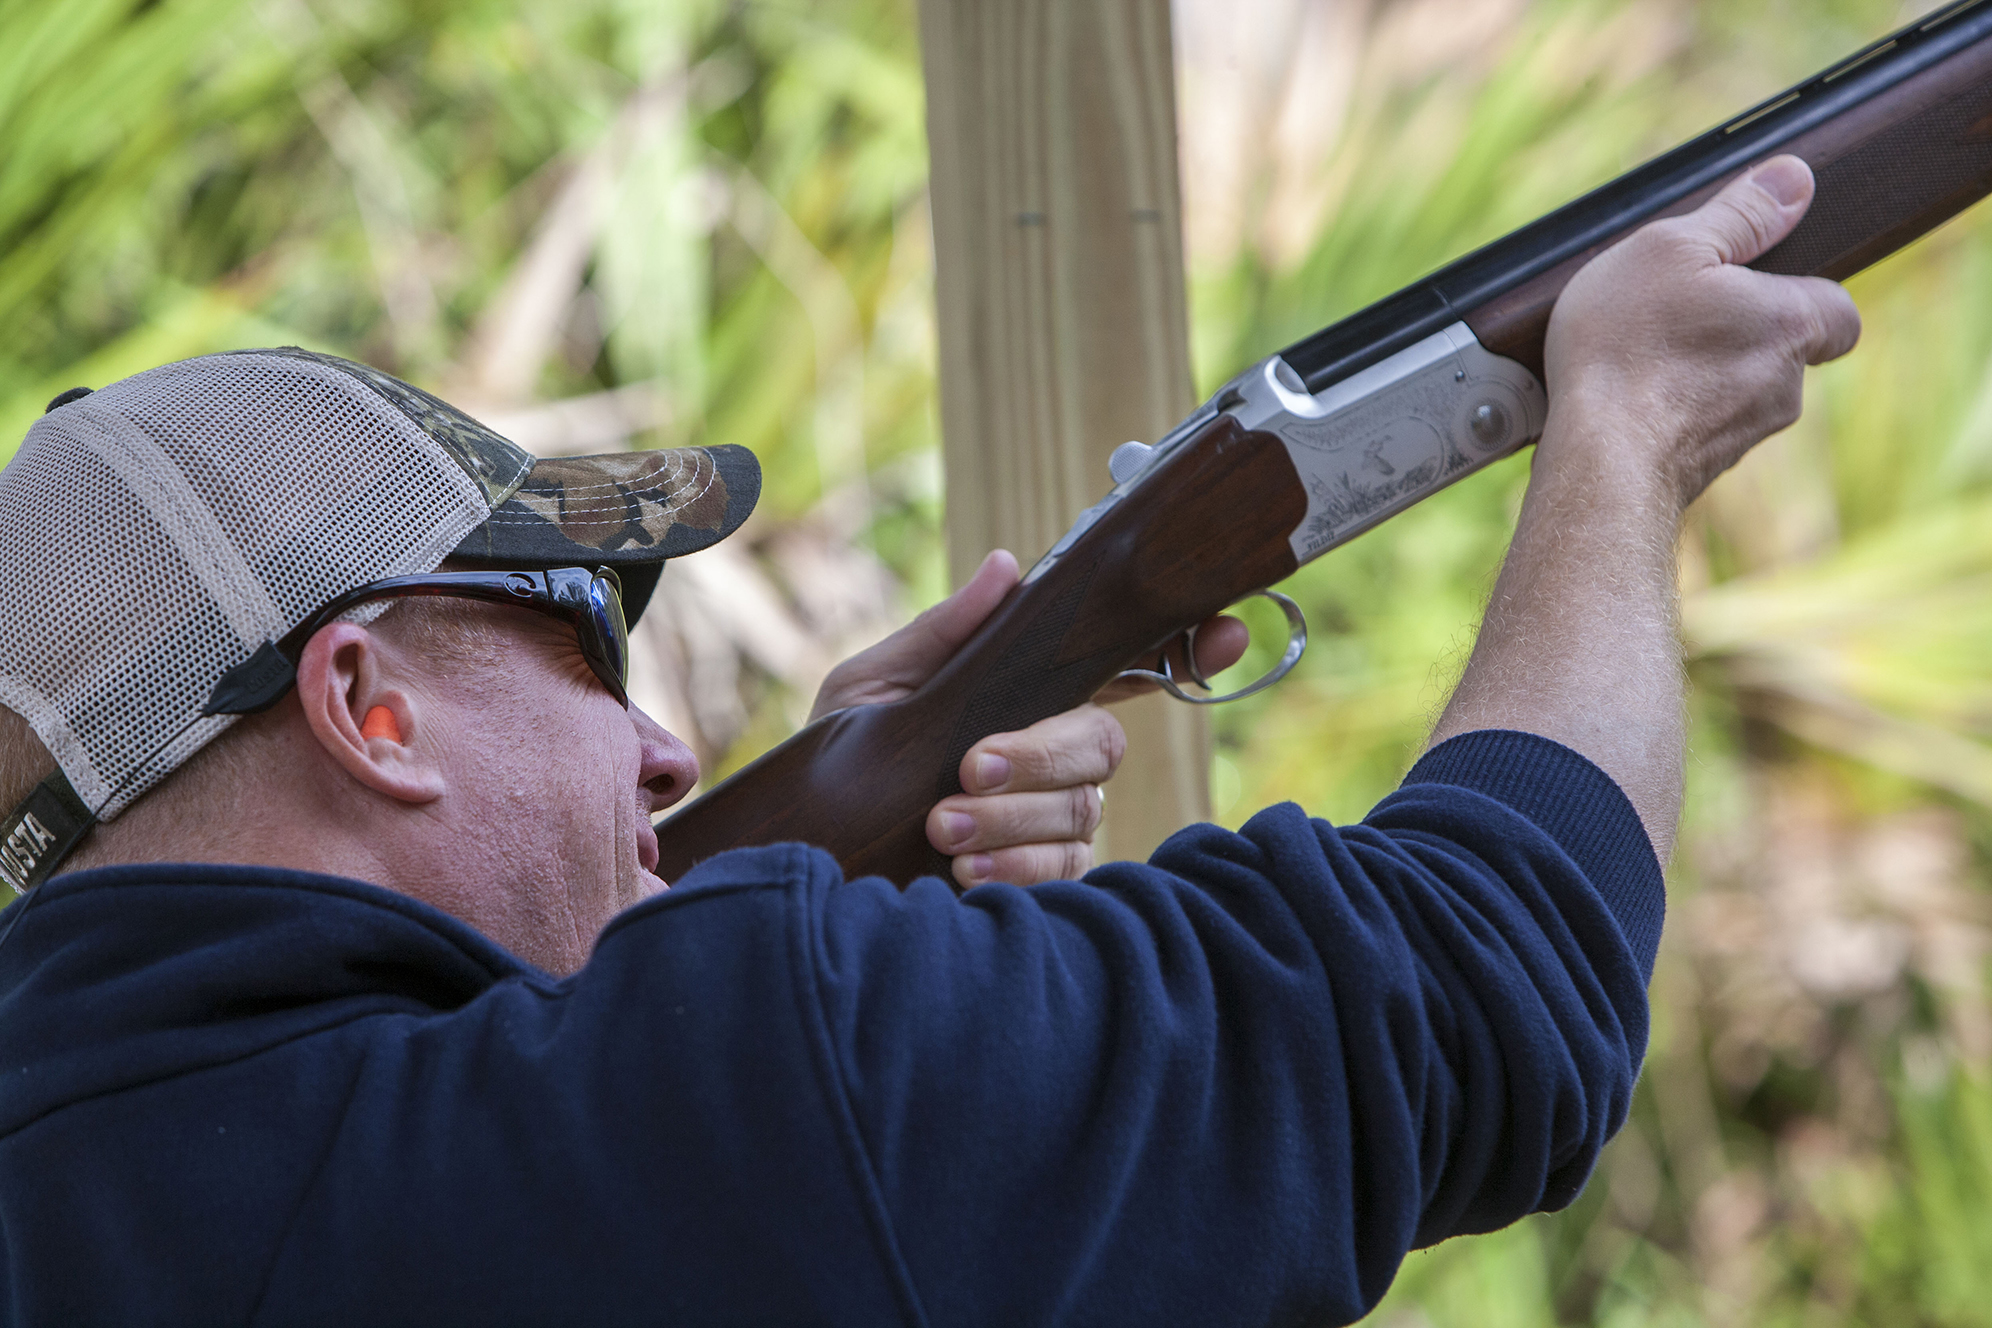 """PCRP Executive Chairman Nick DiCeglie fires his 12-gauge shotgun at a sporting clay. DiCeglie began the sport about 10 years ago and said the event was a good way to """"change things up a bit, have some fun and celebrate our Second Amendment rights."""""""